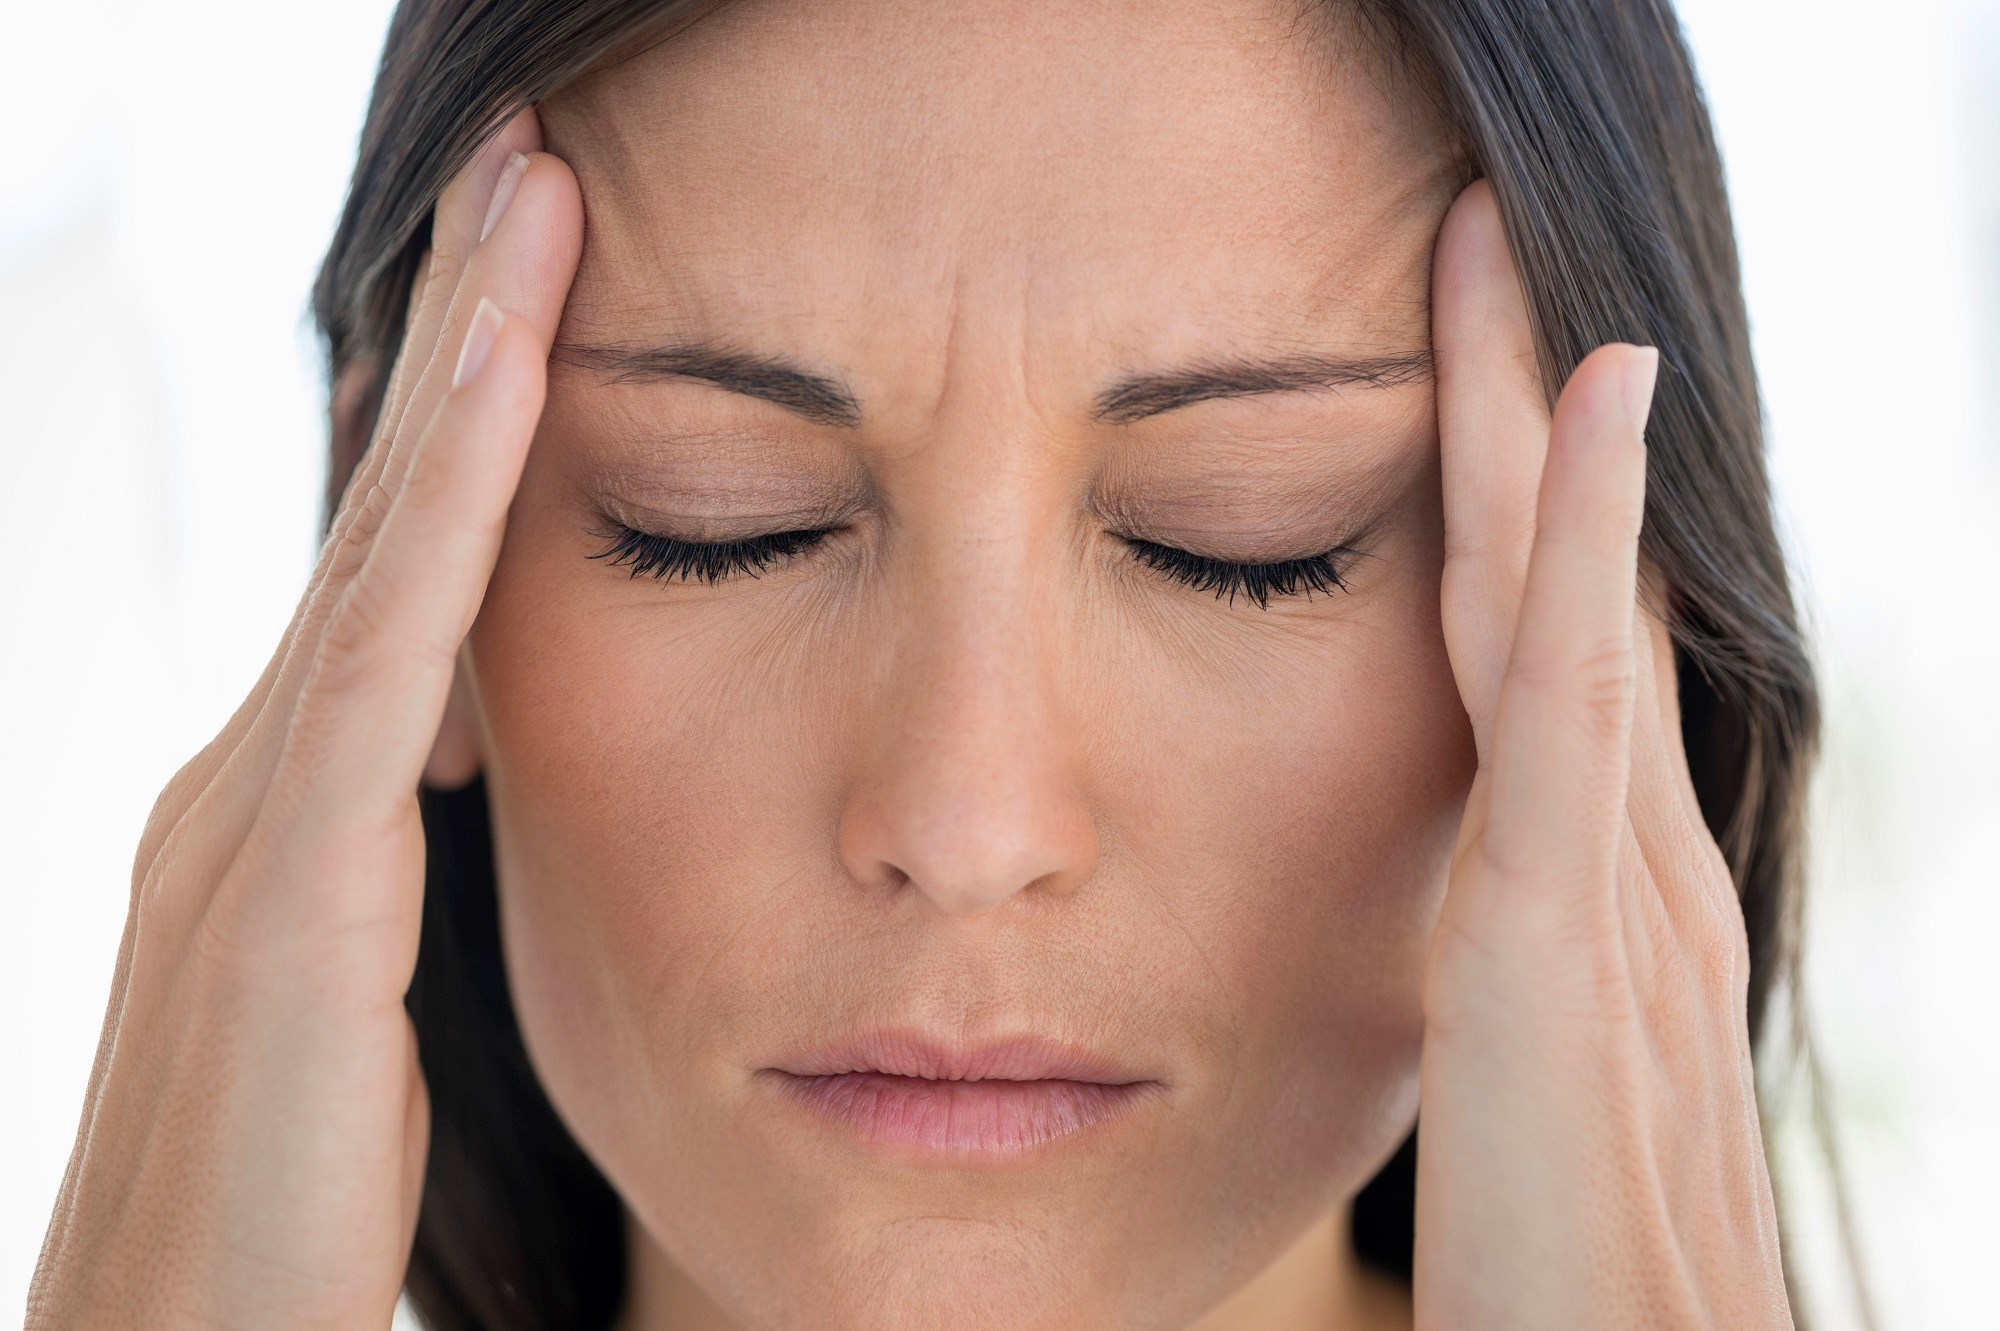 The use of pulse focused ultrasound may be a cost-effective, non-invasive way to transiently and potentially permanently manage migraine symptoms.